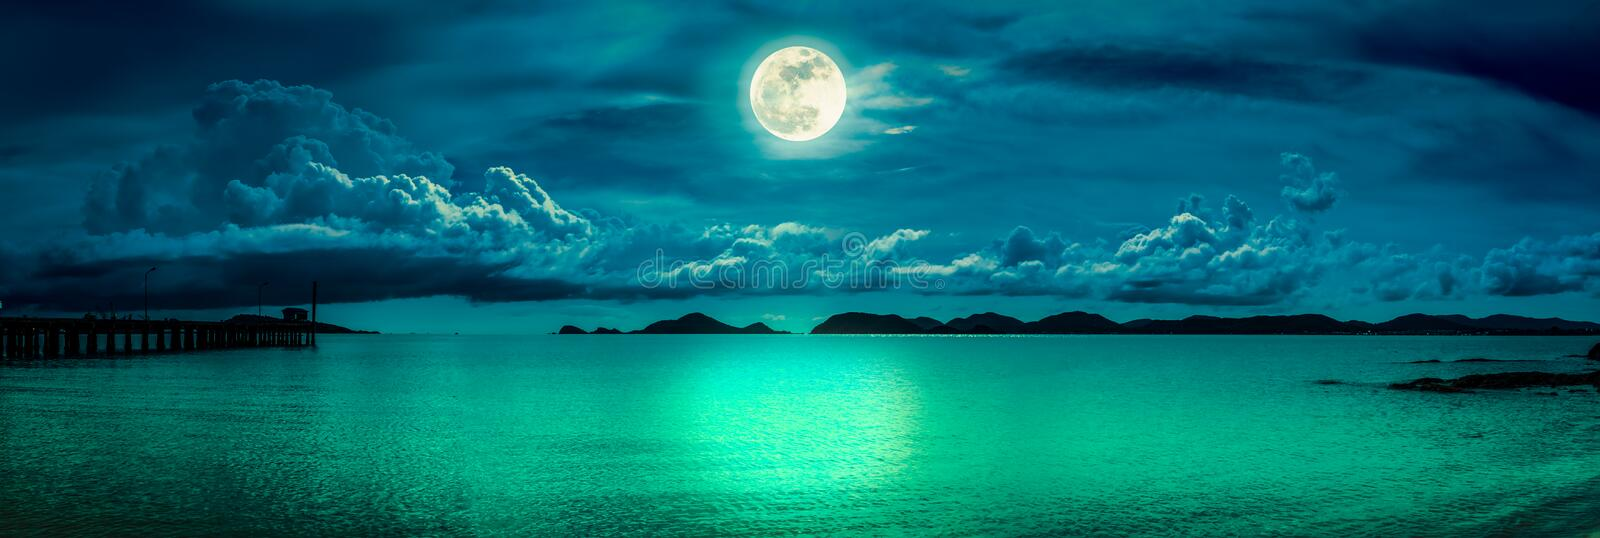 Panorama view of the sea. Colorful sky with cloud and bright full moon on seascape to night. Serenity nature background, outdoor stock image